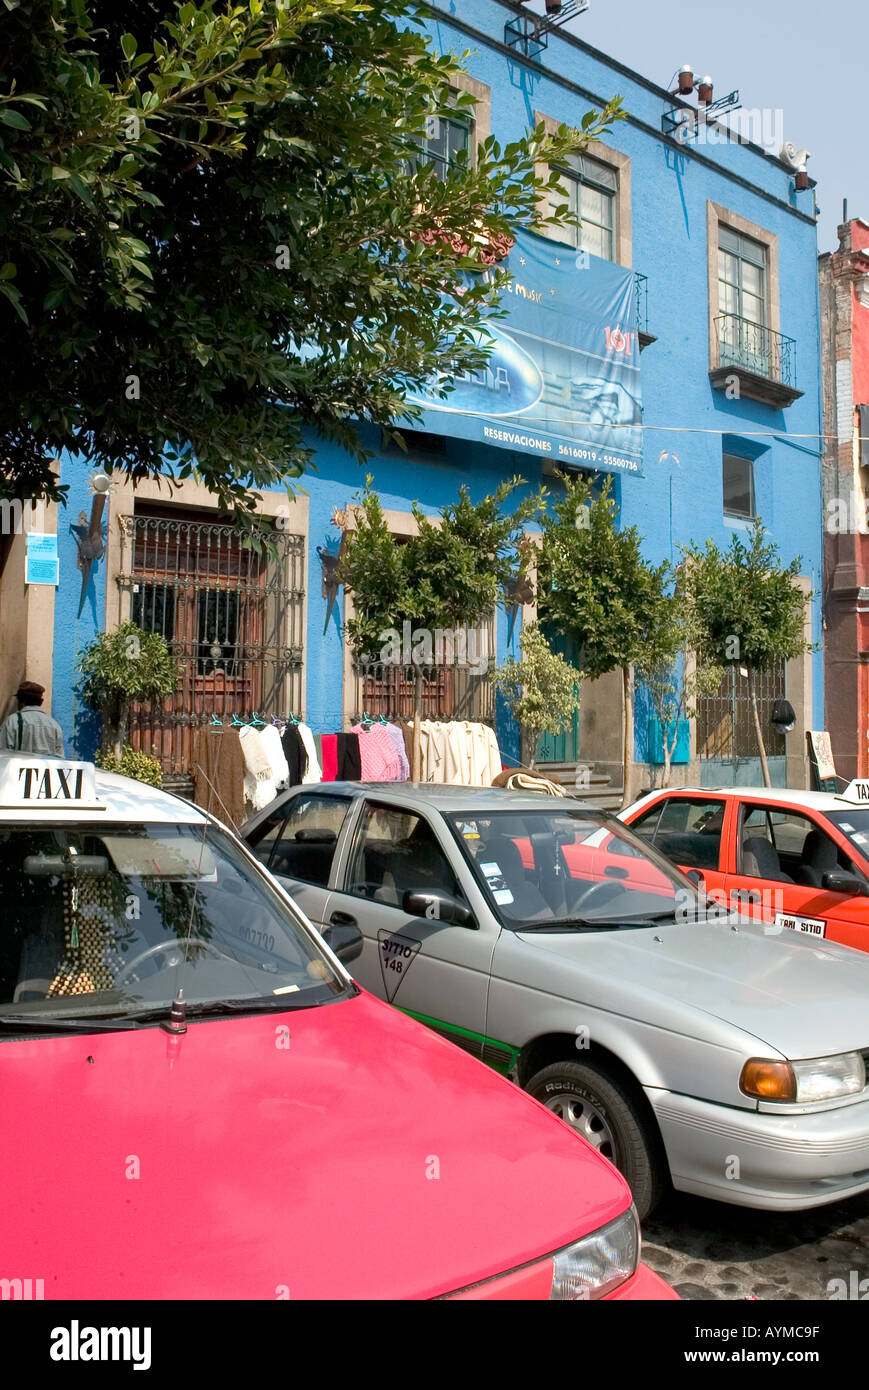 Taxi and cars parked infront of a bright blue building in San Angel Mexico City - Stock Image